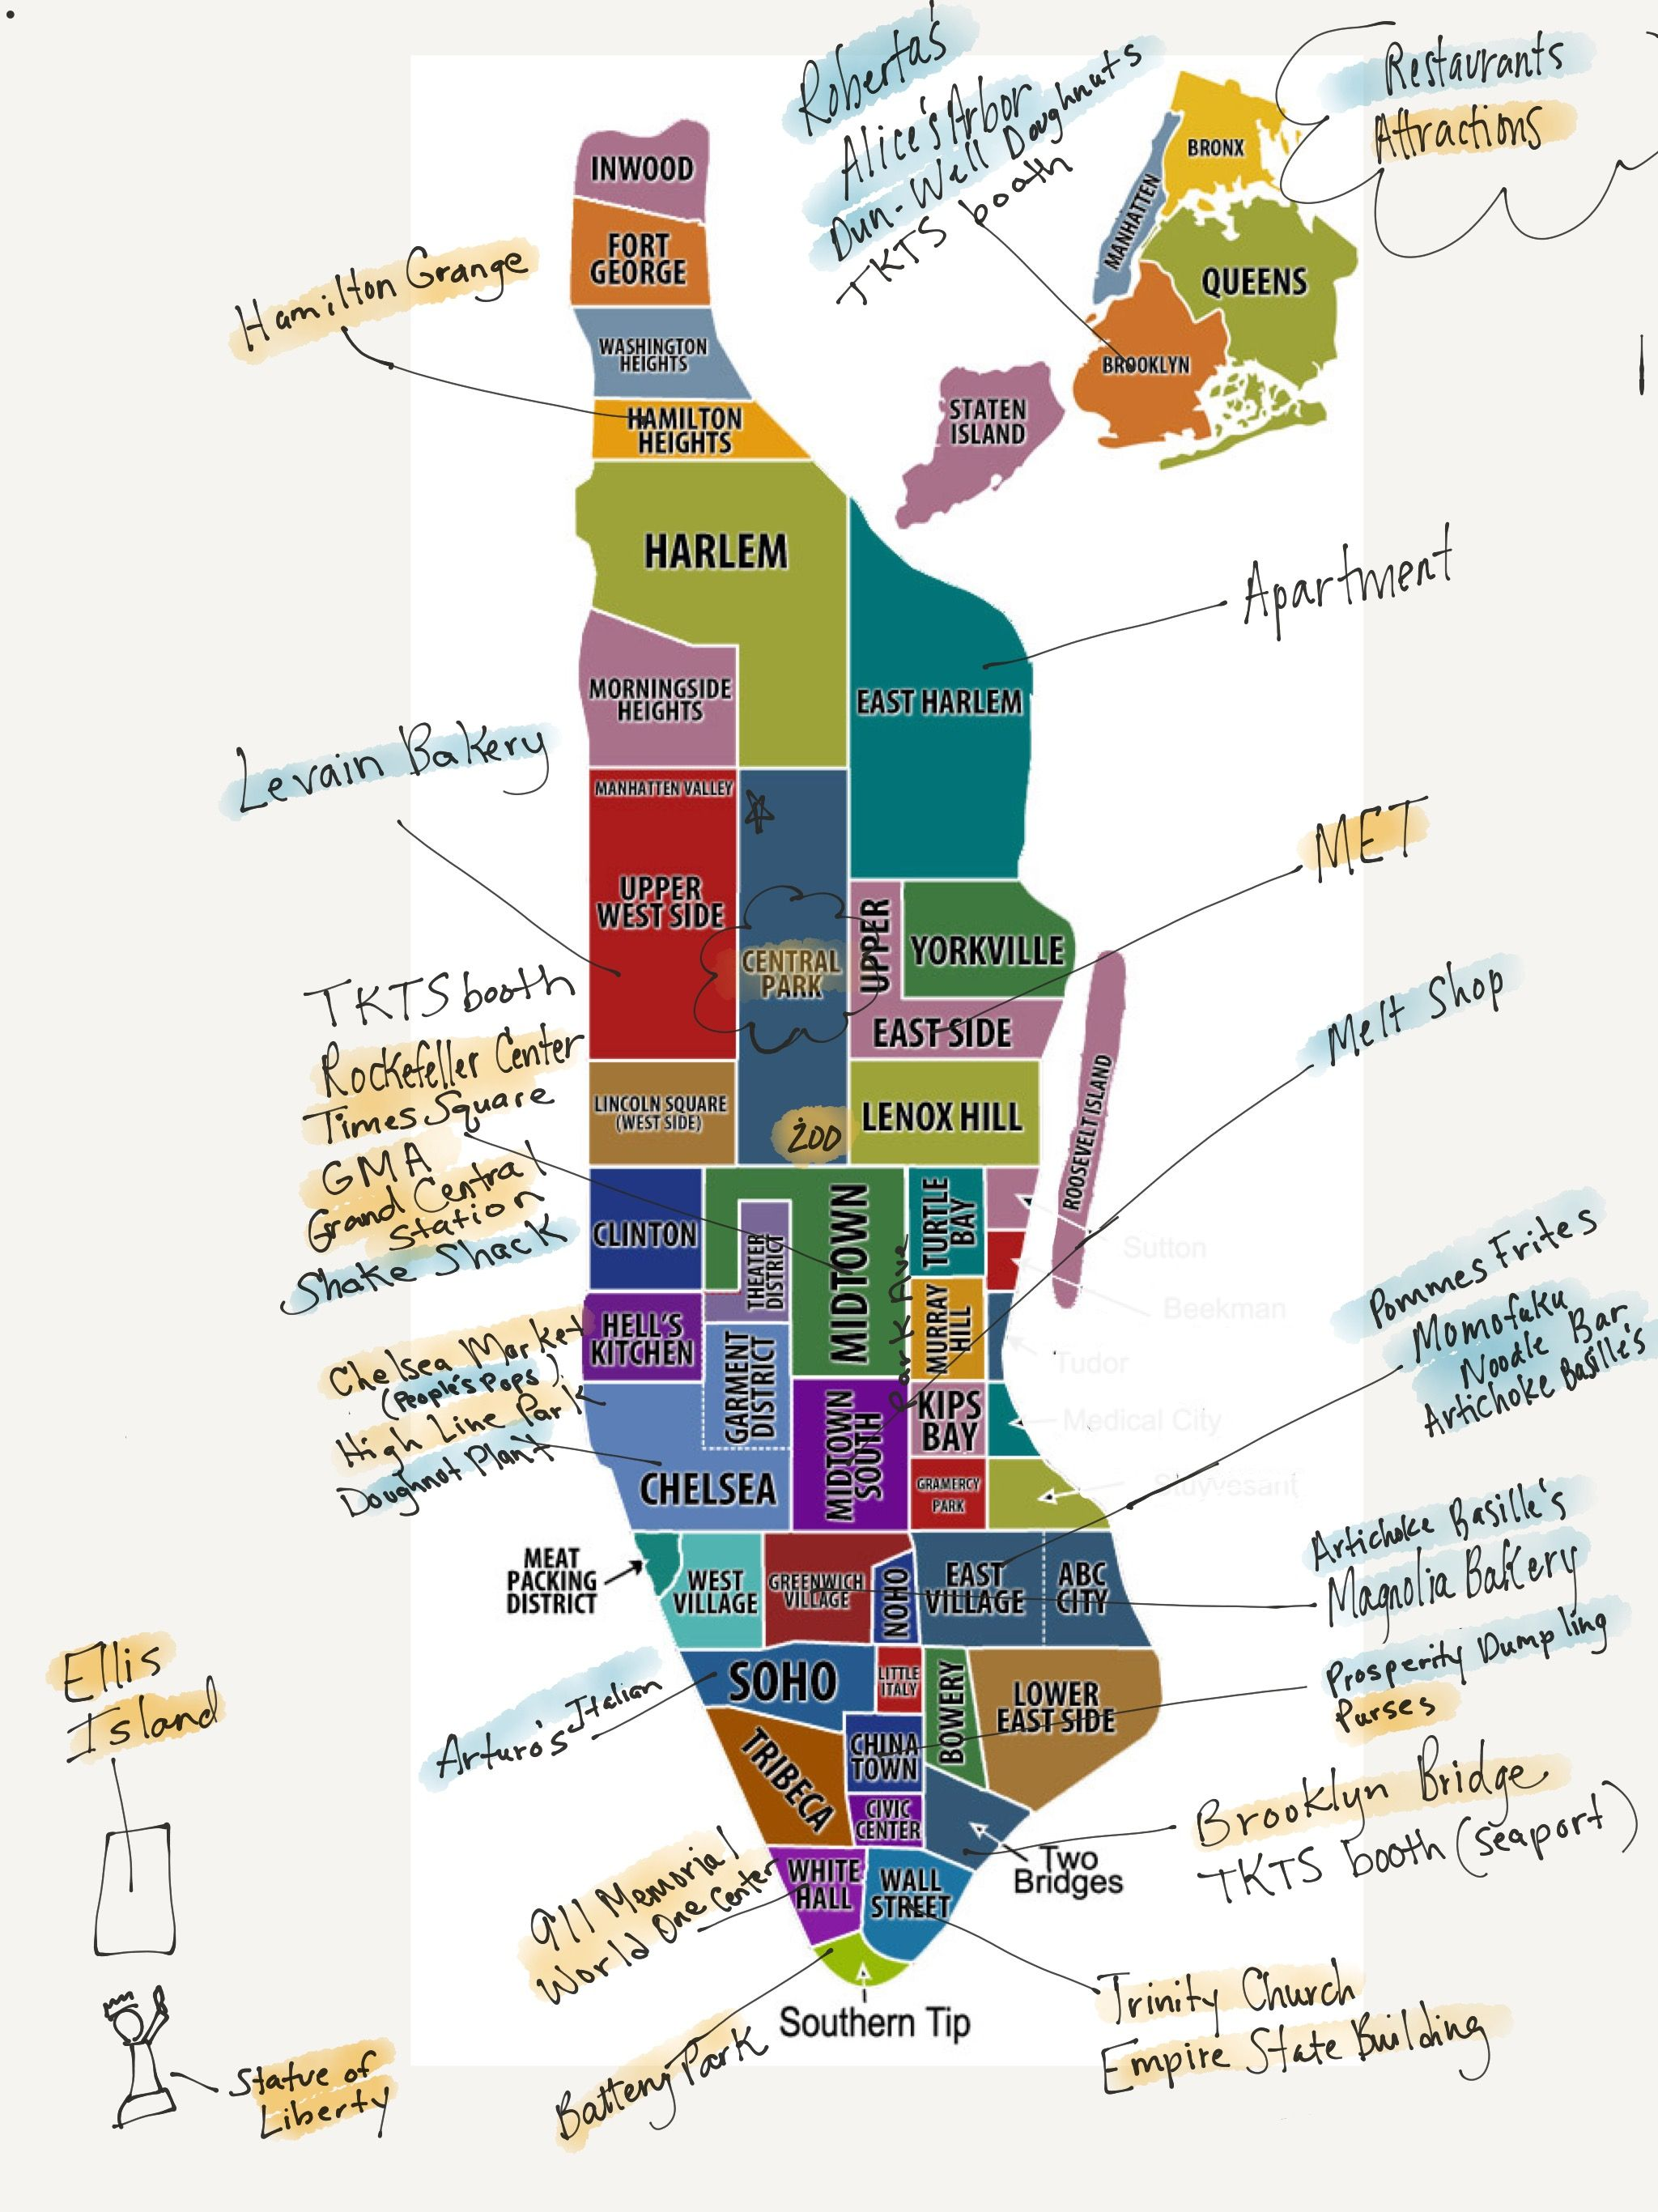 Attraction Map Of New York.My Friend S Handwritten Map Of Good Eats And Major Attractions